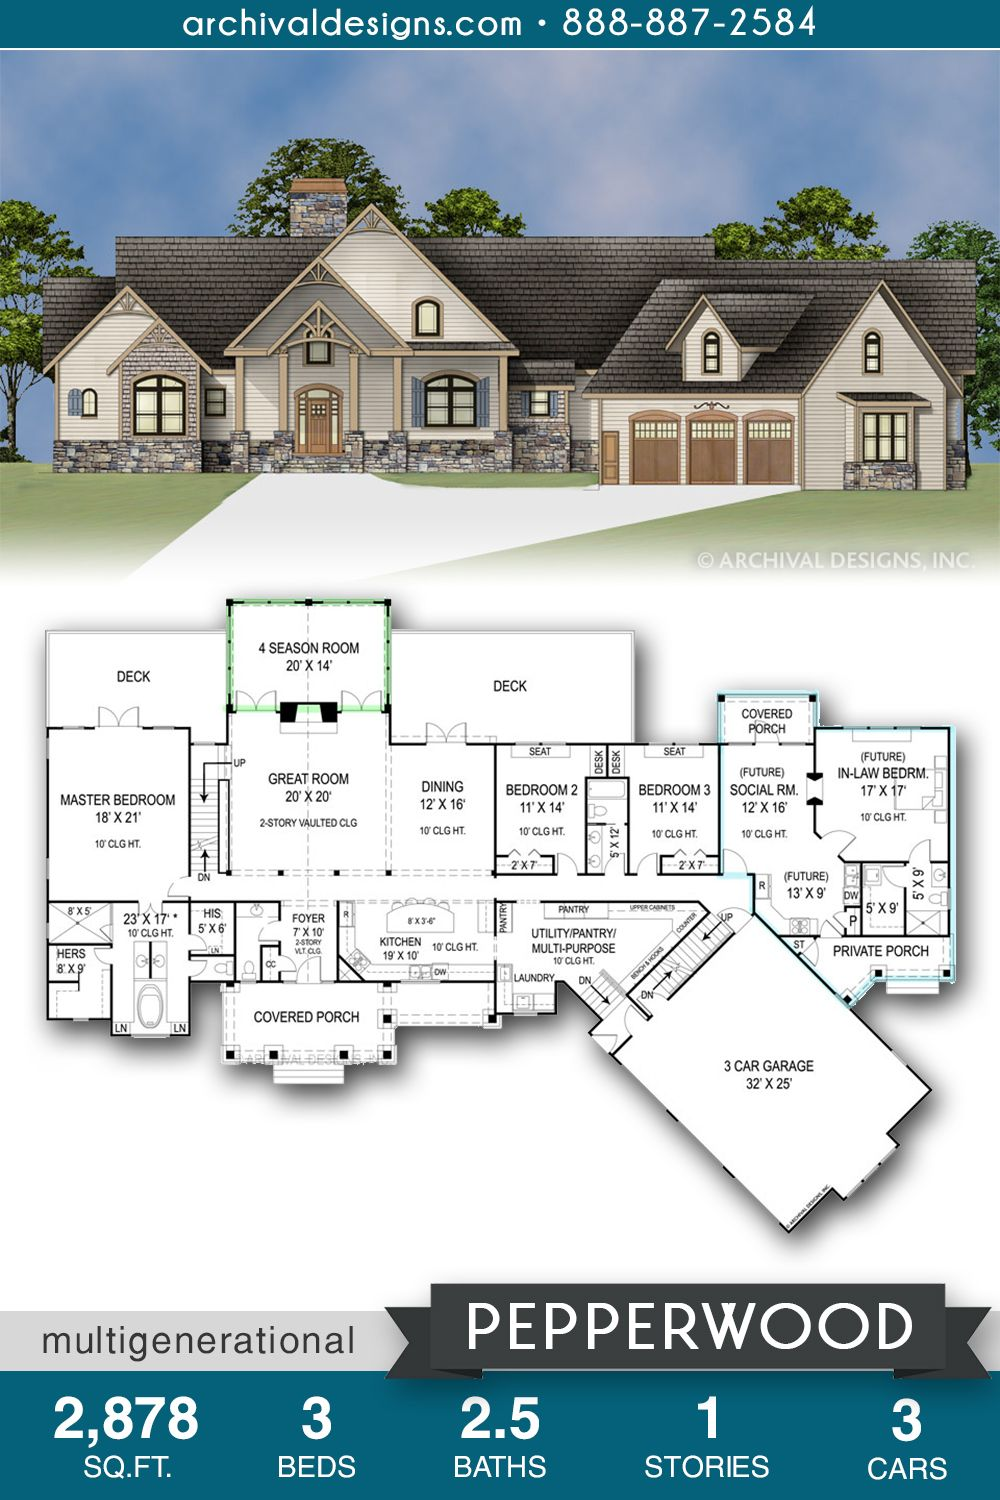 House Plans Rustic Ranch Open Floor 47 Ideas Rustic House Plans Country House Plans Ranch Style House Plans